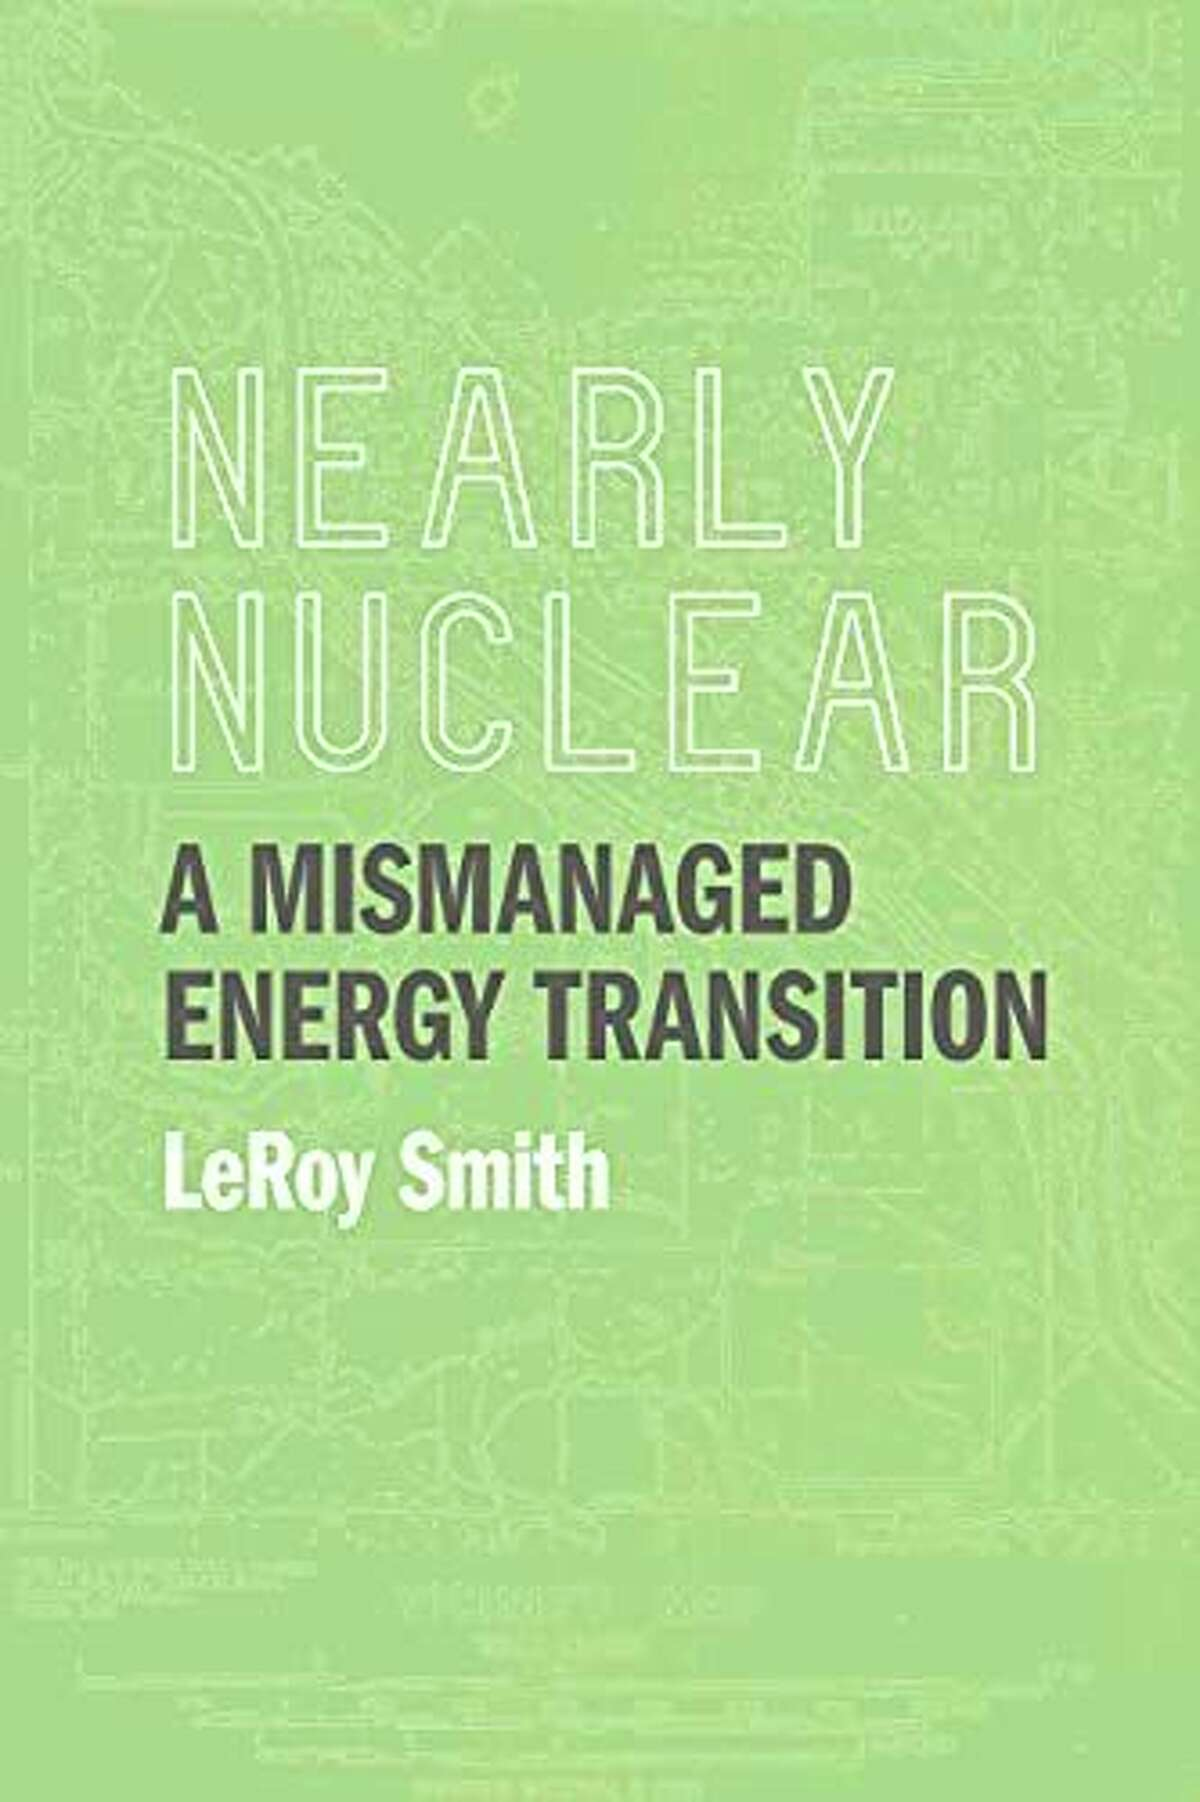 """LeRoy """"Lee"""" Smith will give a talk on his recently published book, """"Nearly Nuclear: A Mismanaged Energy Transition"""" on Thursday, Oct. 7 at Creative 360. (Photo provided)"""